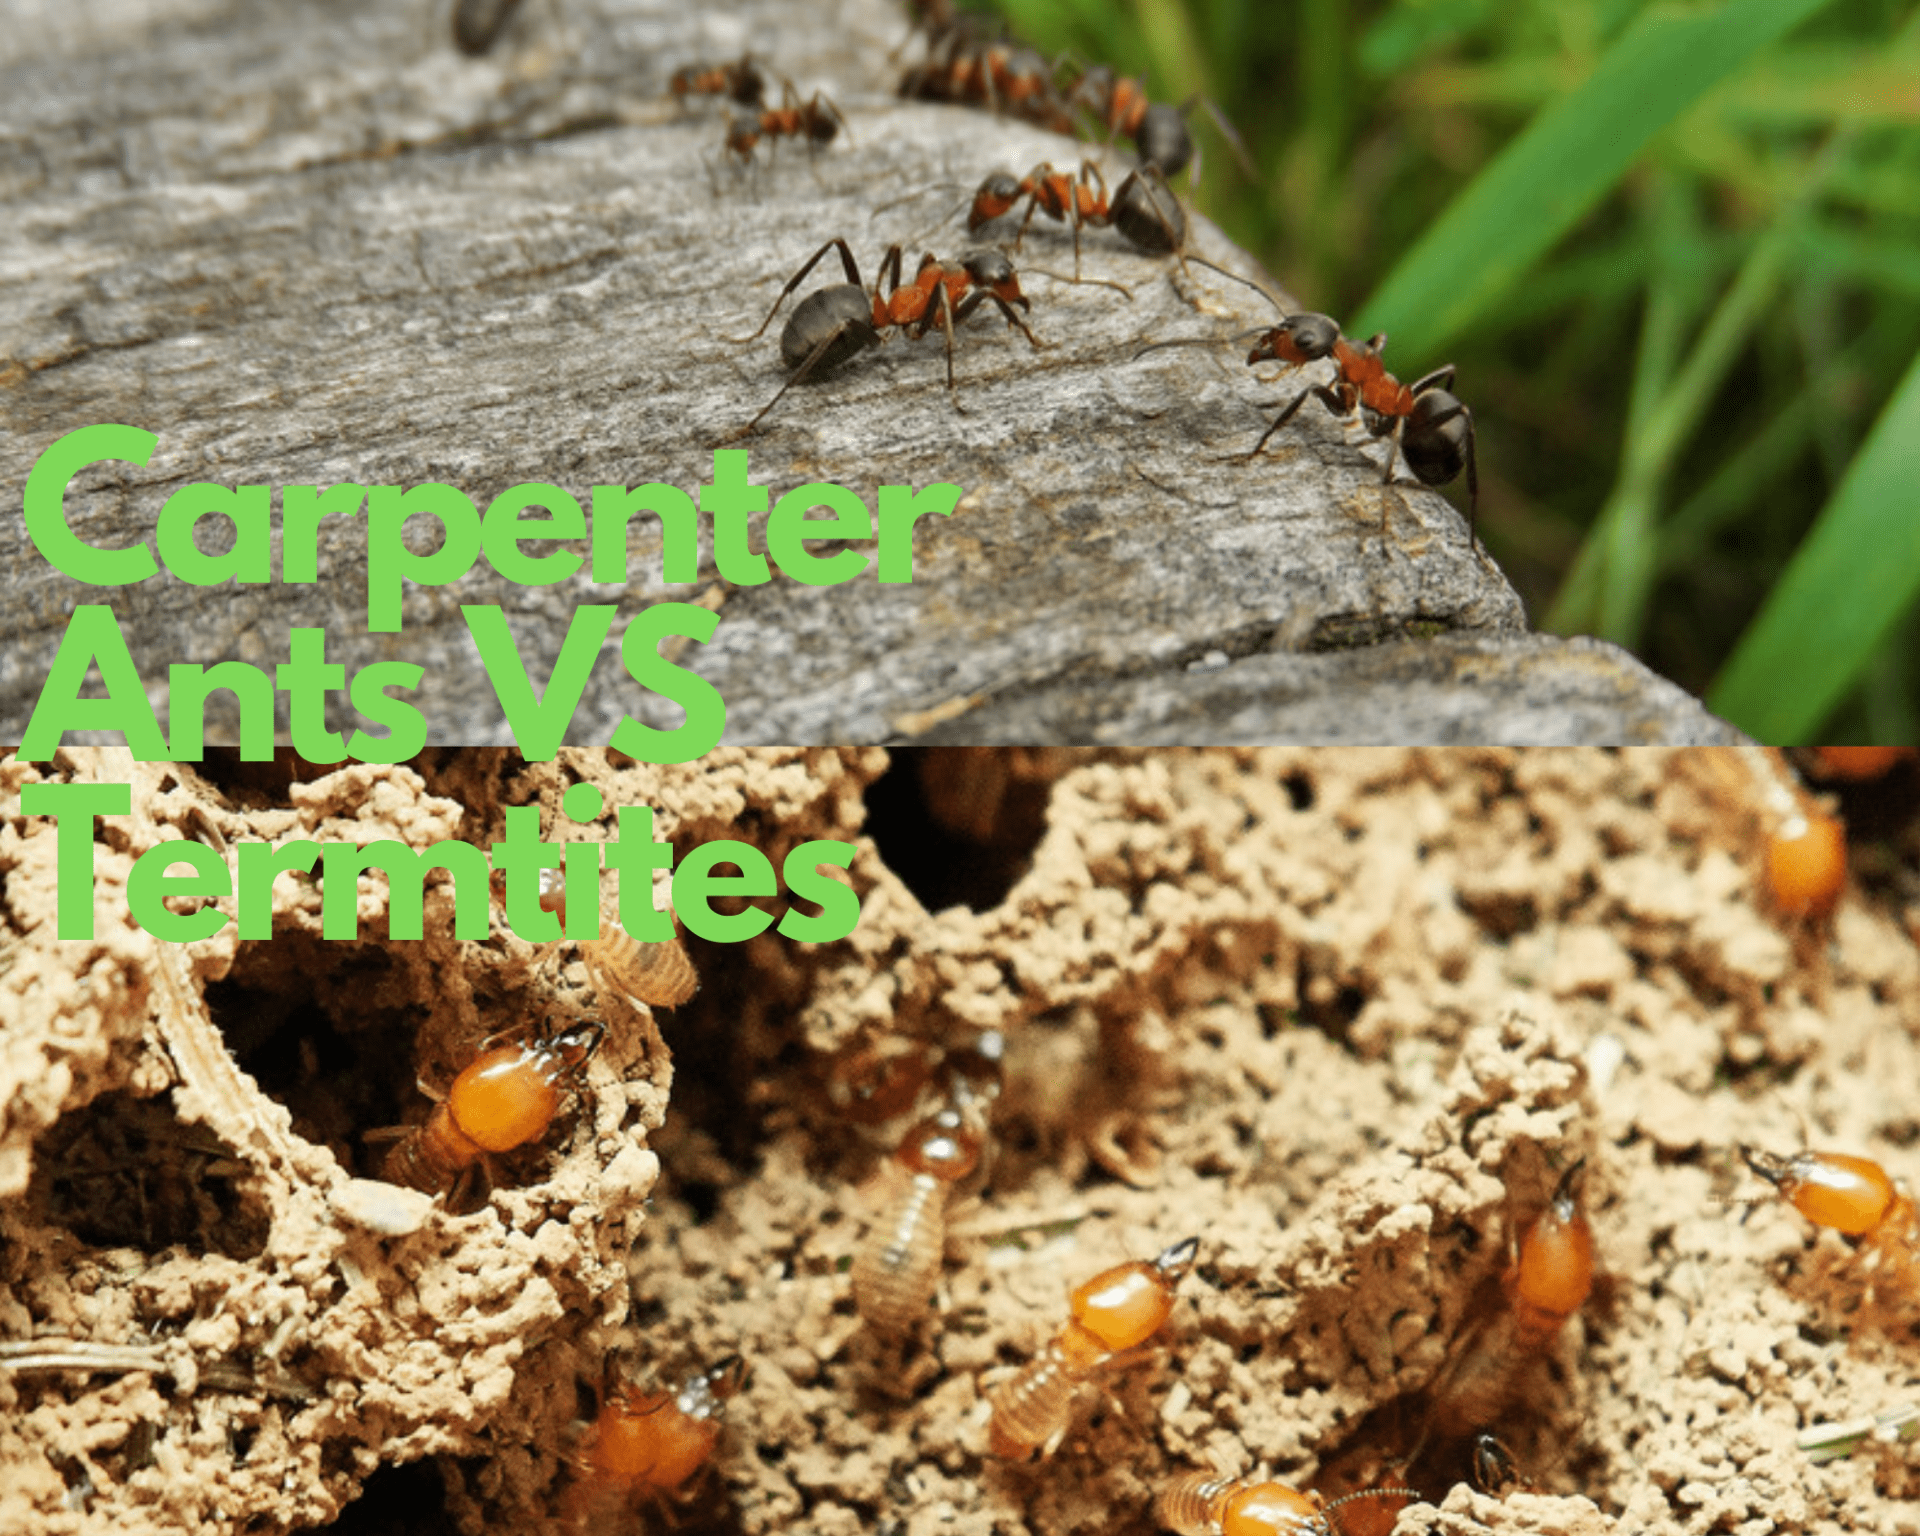 Carpenter Ants Vs Termites What S The Difference